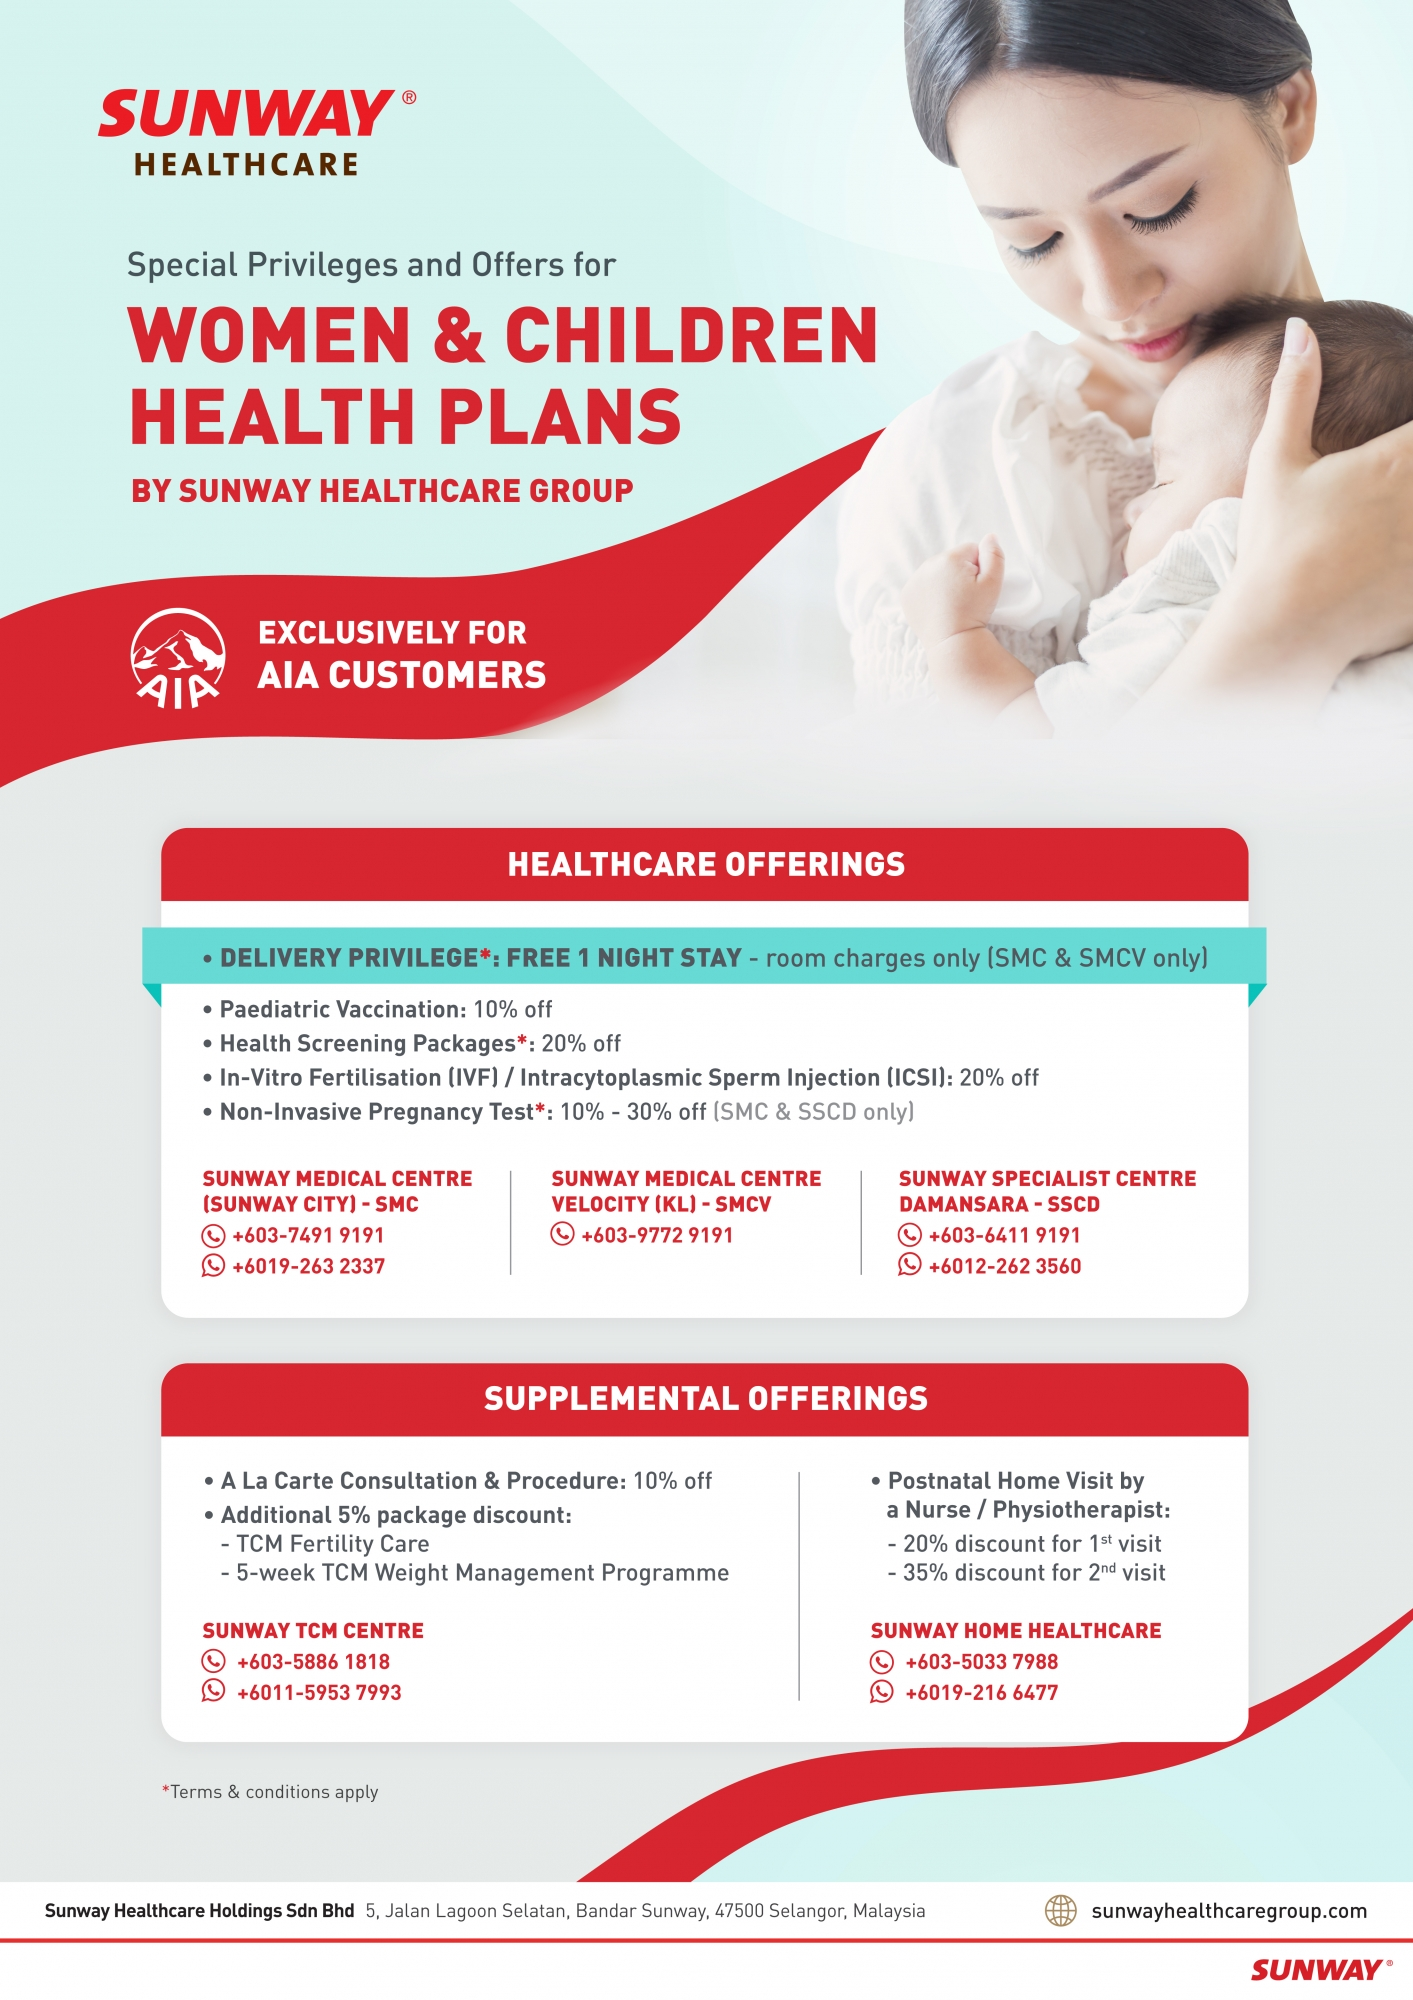 Women & Children Health Plans - for AIA customers